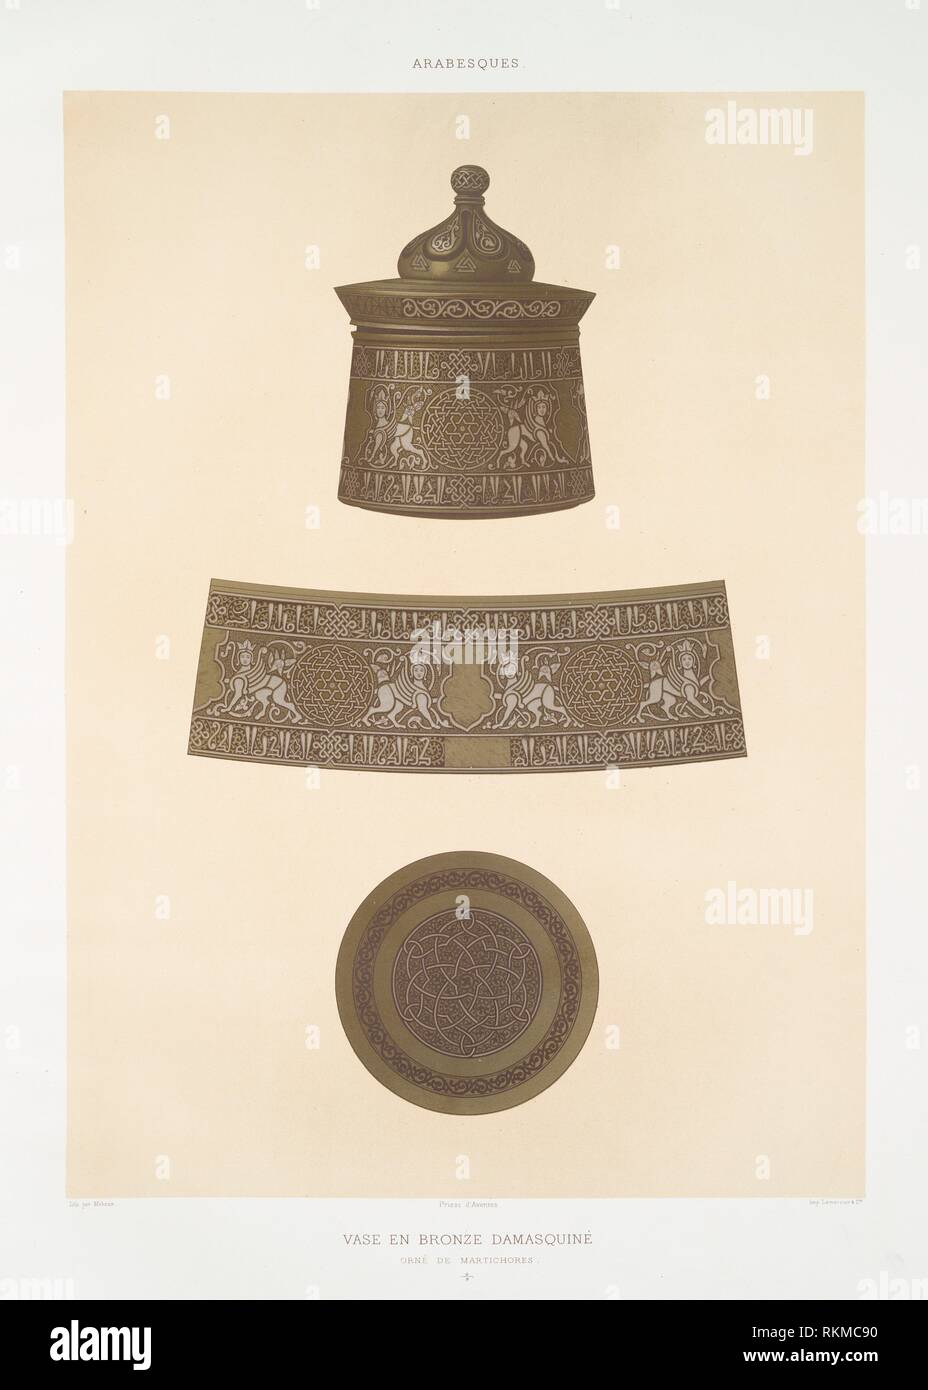 Arabesques: Damaskus bronze vase, ornate martyrs: 0/0. Prisse d´Avennes (1807-1879) (Author) Méheux (Lithographer) Prisse d´Avennes (1807-1879) Stock Photo